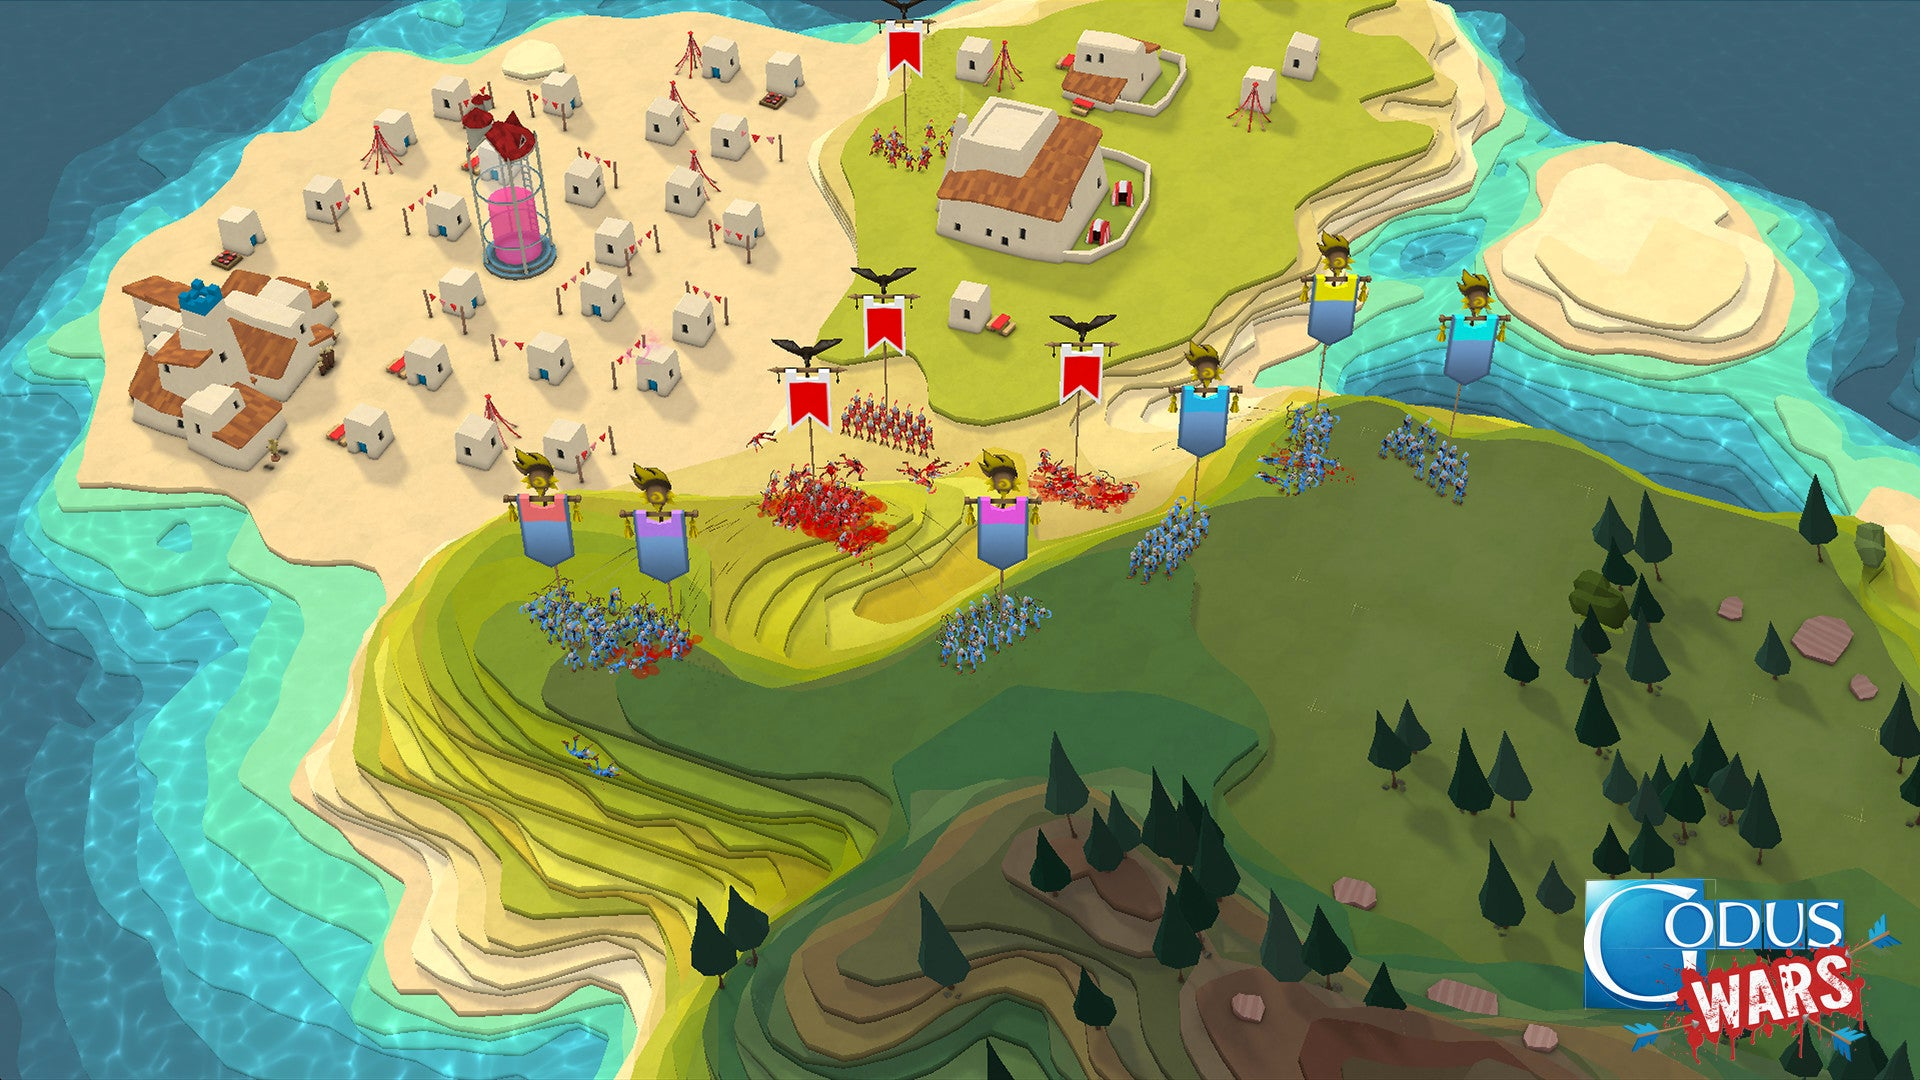 Peter Molyneux Releases Another Godus Game